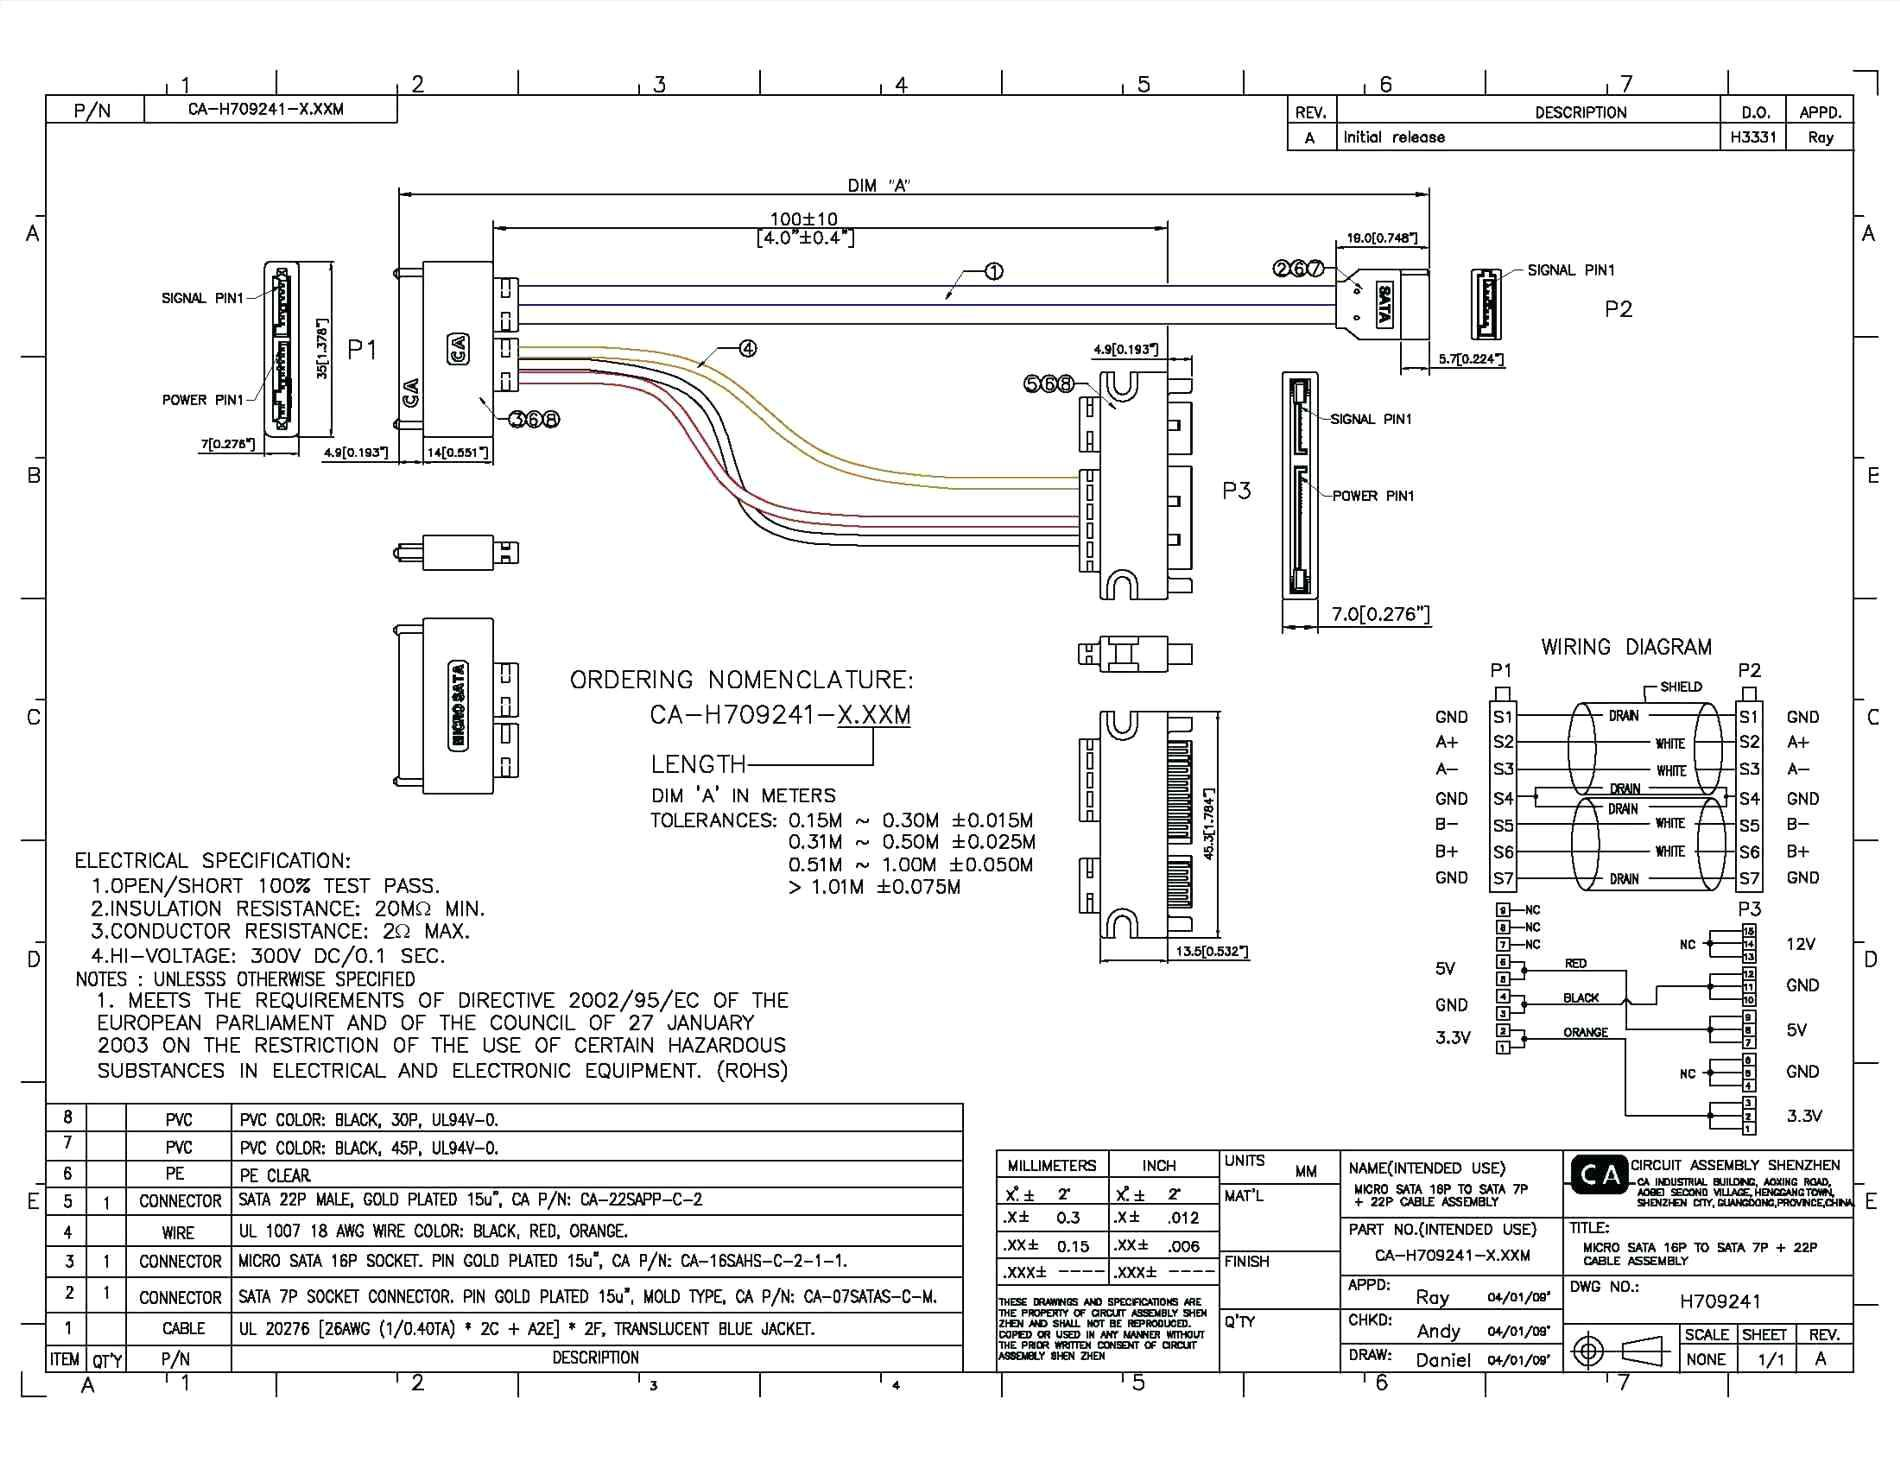 sata to usb cable wiring diagram copy usb serial wiring diagram i to sata to usb cable wiring diagram copy usb serial wiring diagram i to of timing port cable connection